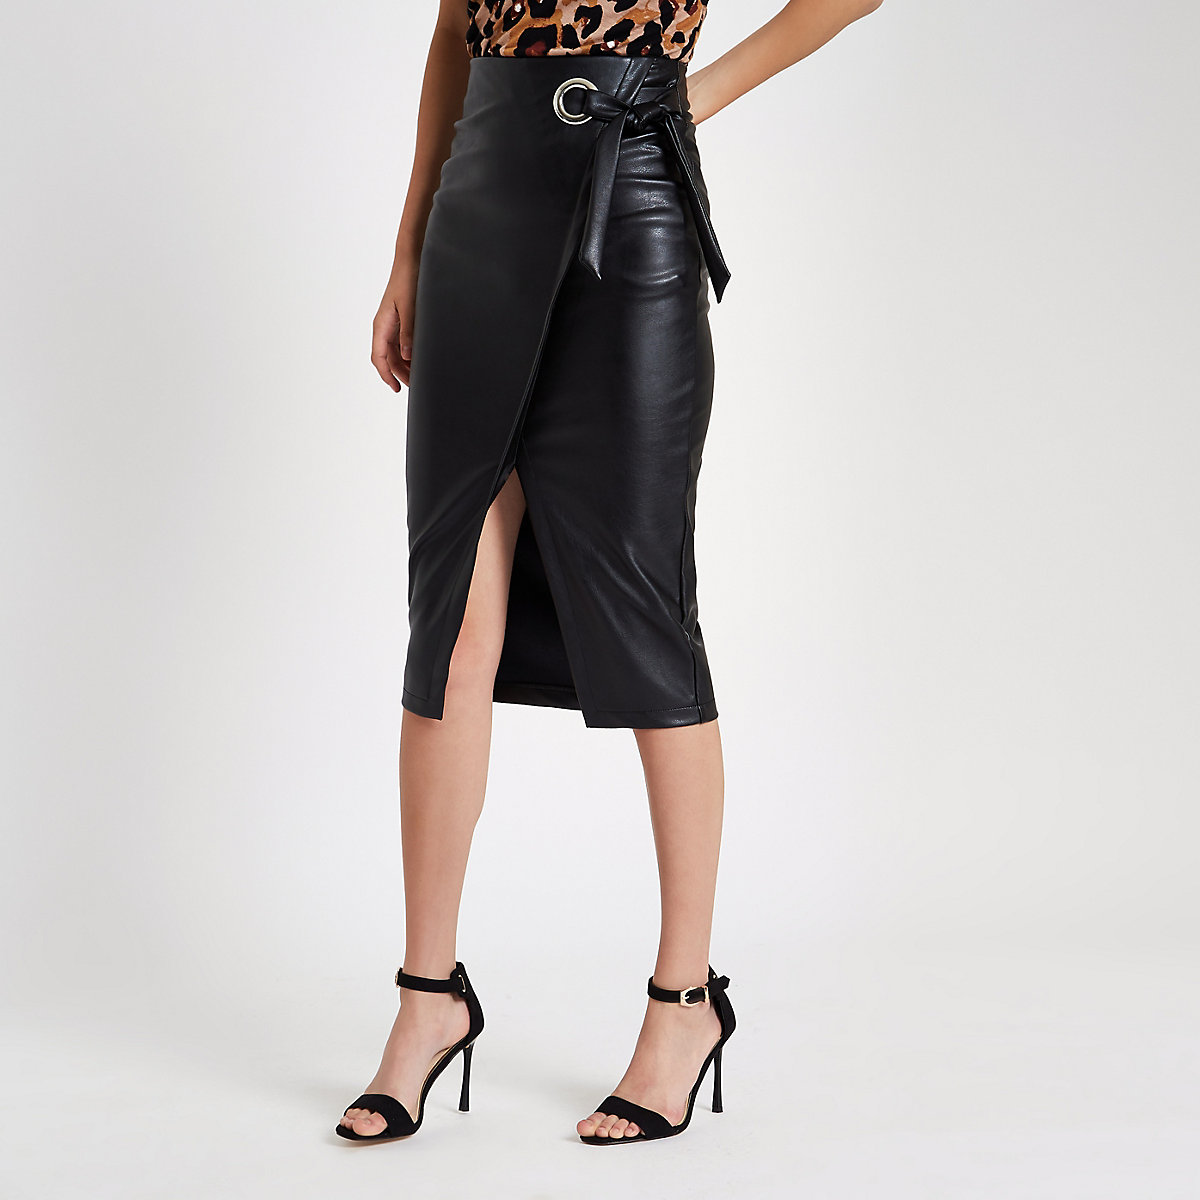 Black faux leather wrap tie-up pencil skirt